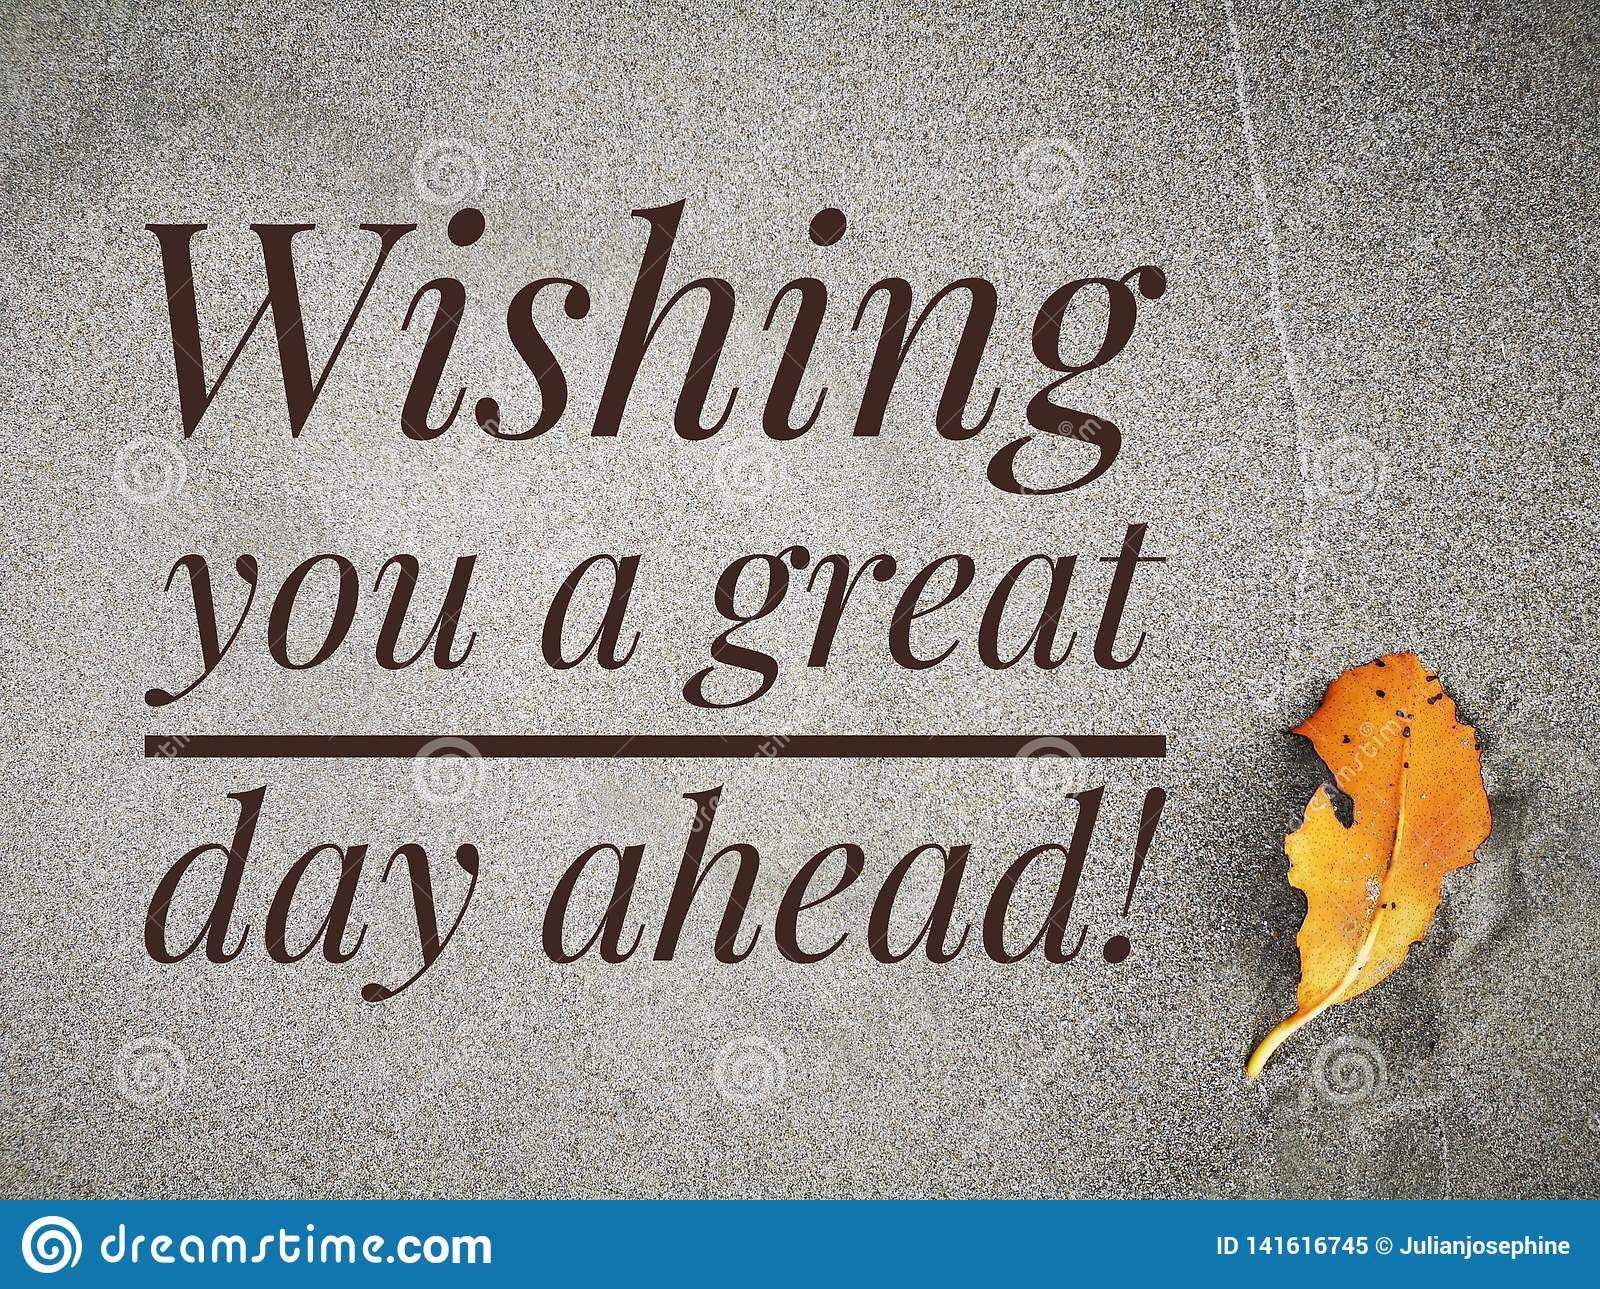 Wishing You A Great Day Ahead Quote For Daily Quote Stock Image